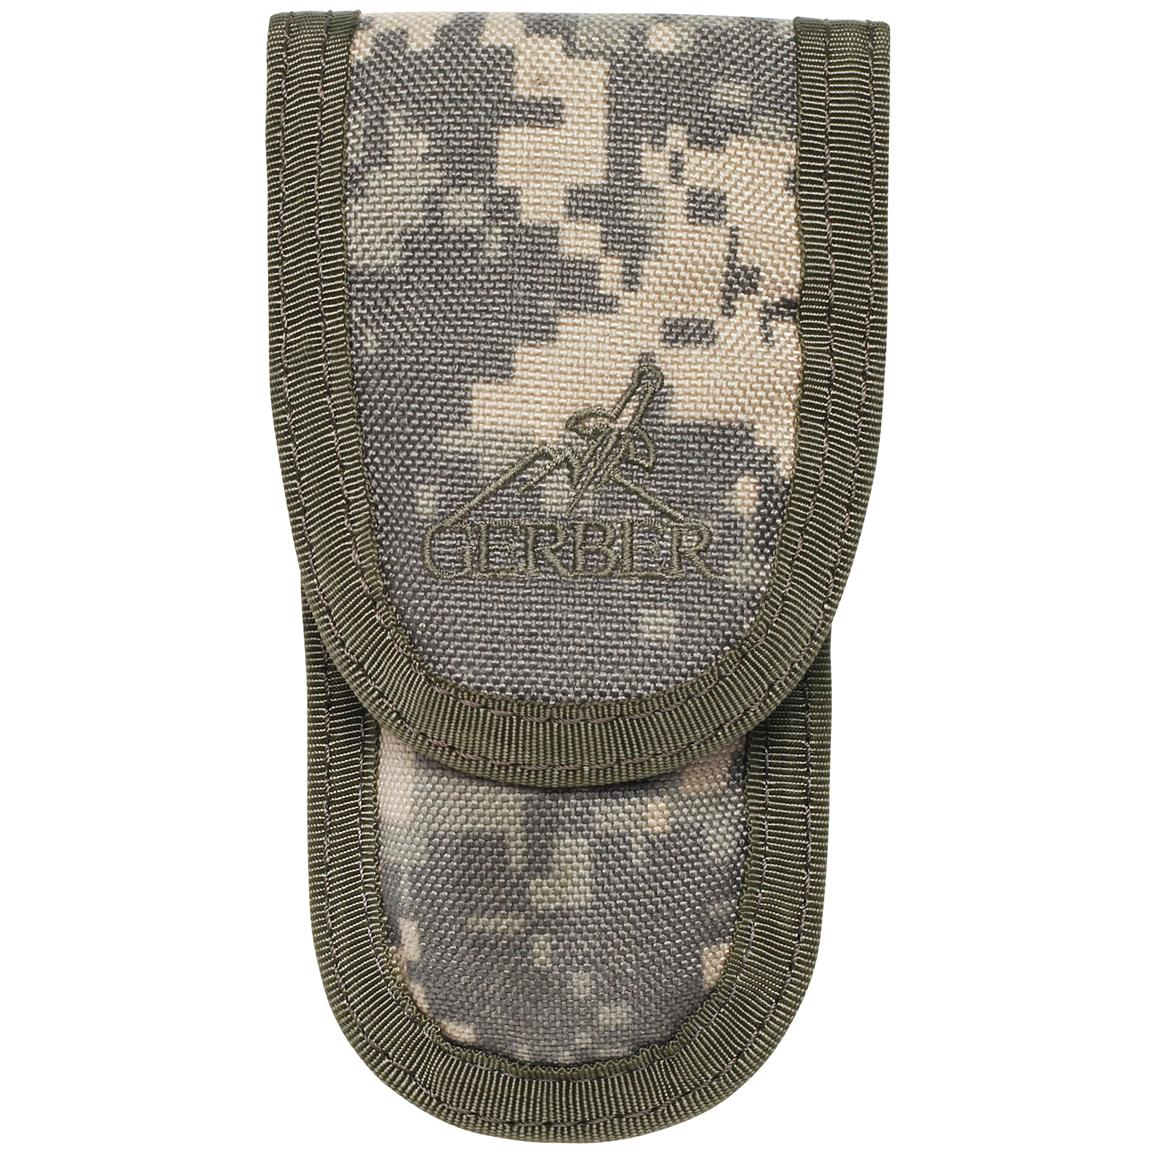 Includes ACU sheath for easy transport